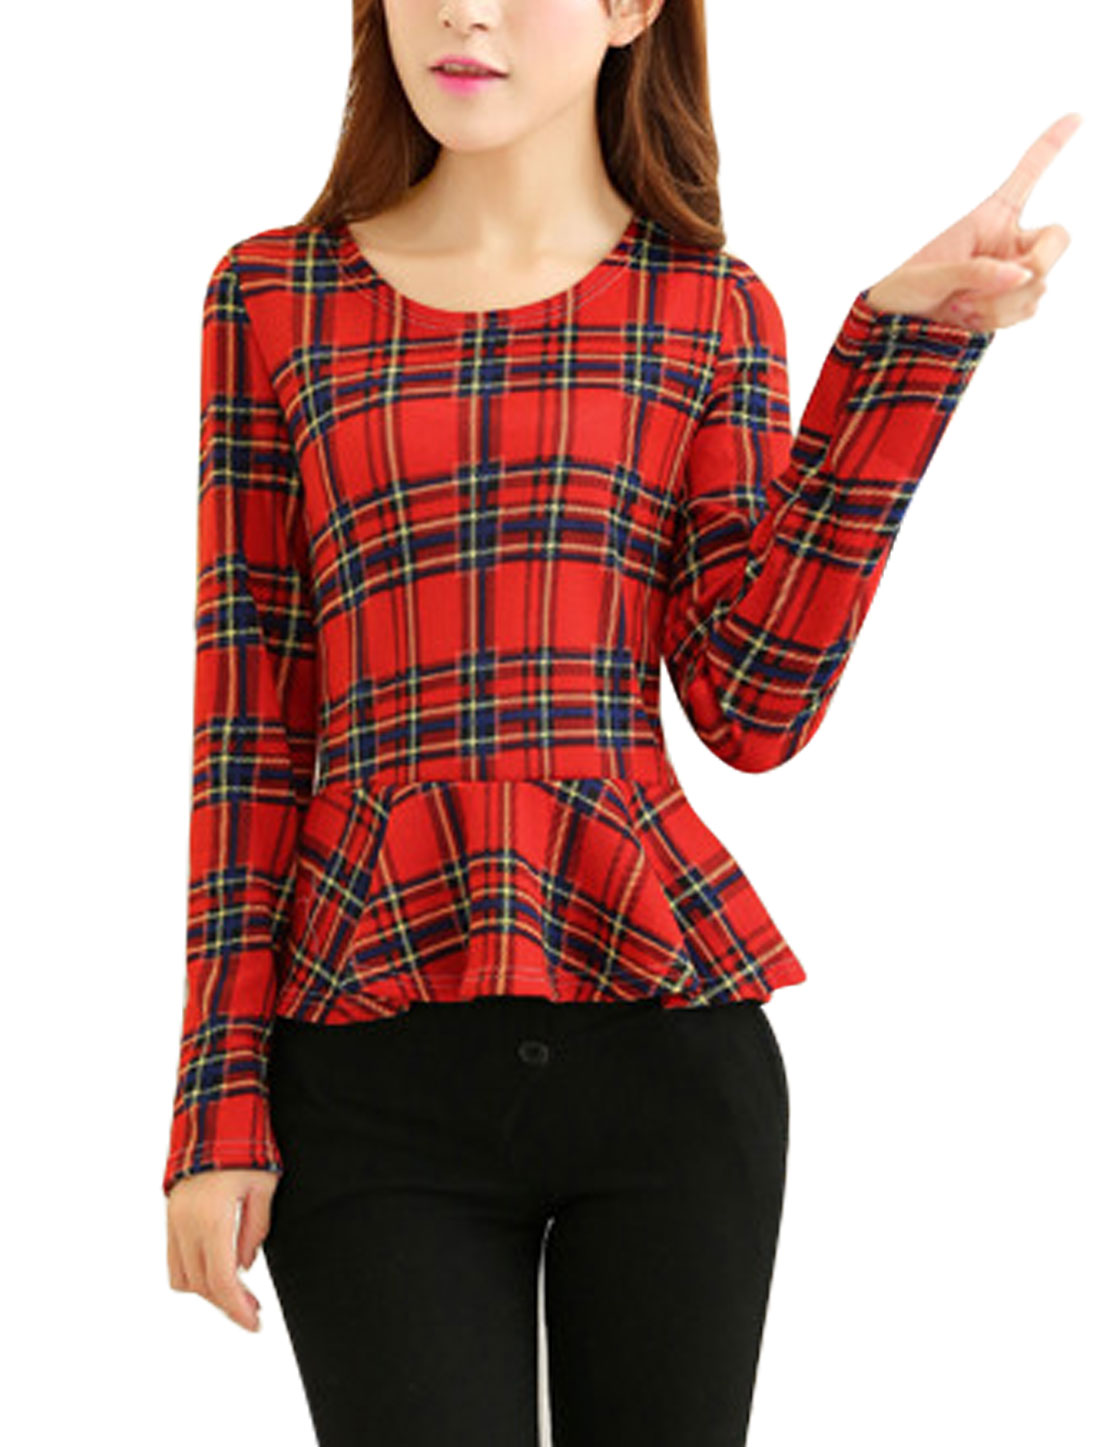 Women Plaids Pattern Round Neck Long Sleeve Knit Peplum Top Red XS